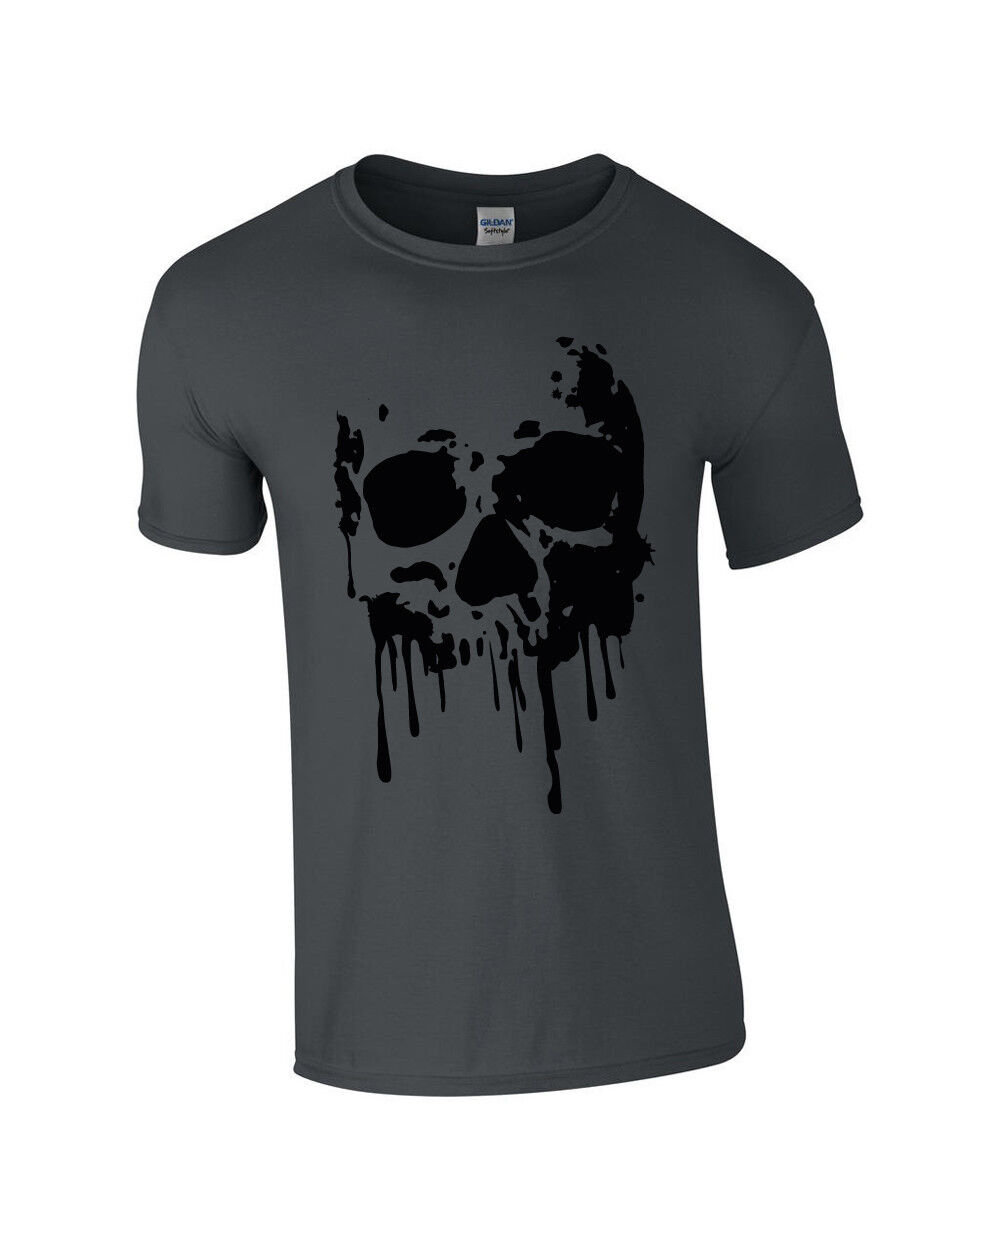 T-Shirt Skull Totenkopf Blood Blut Herren S-3XL grau grey Dead Head Death cool